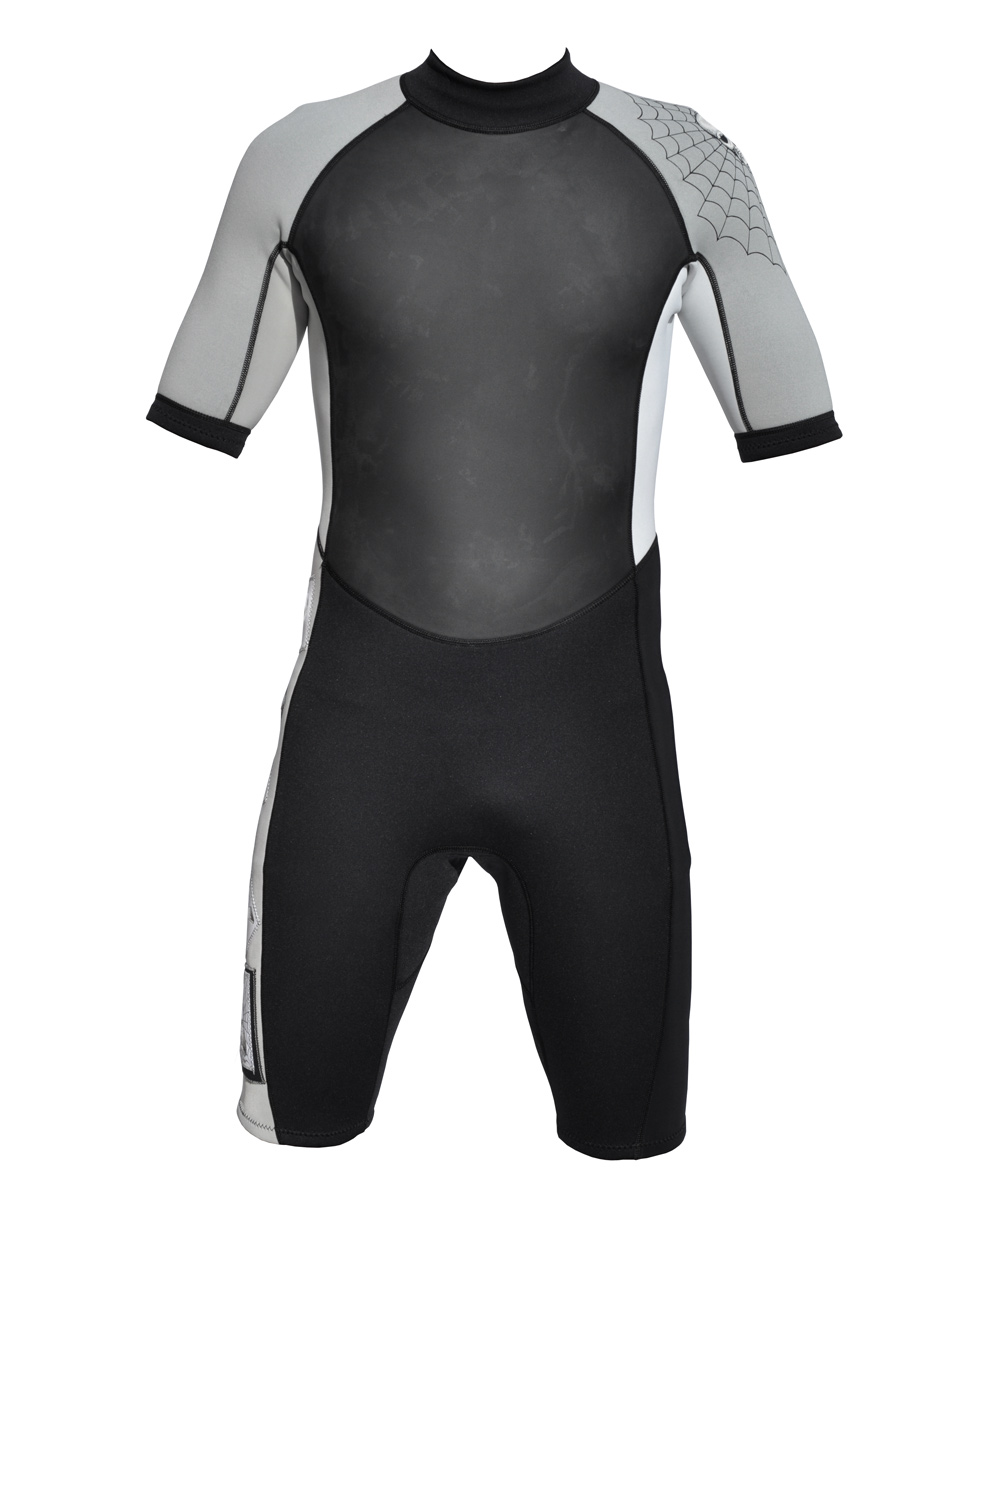 Exceed Extremity Mens 3/2mm Shorty Wetsuit